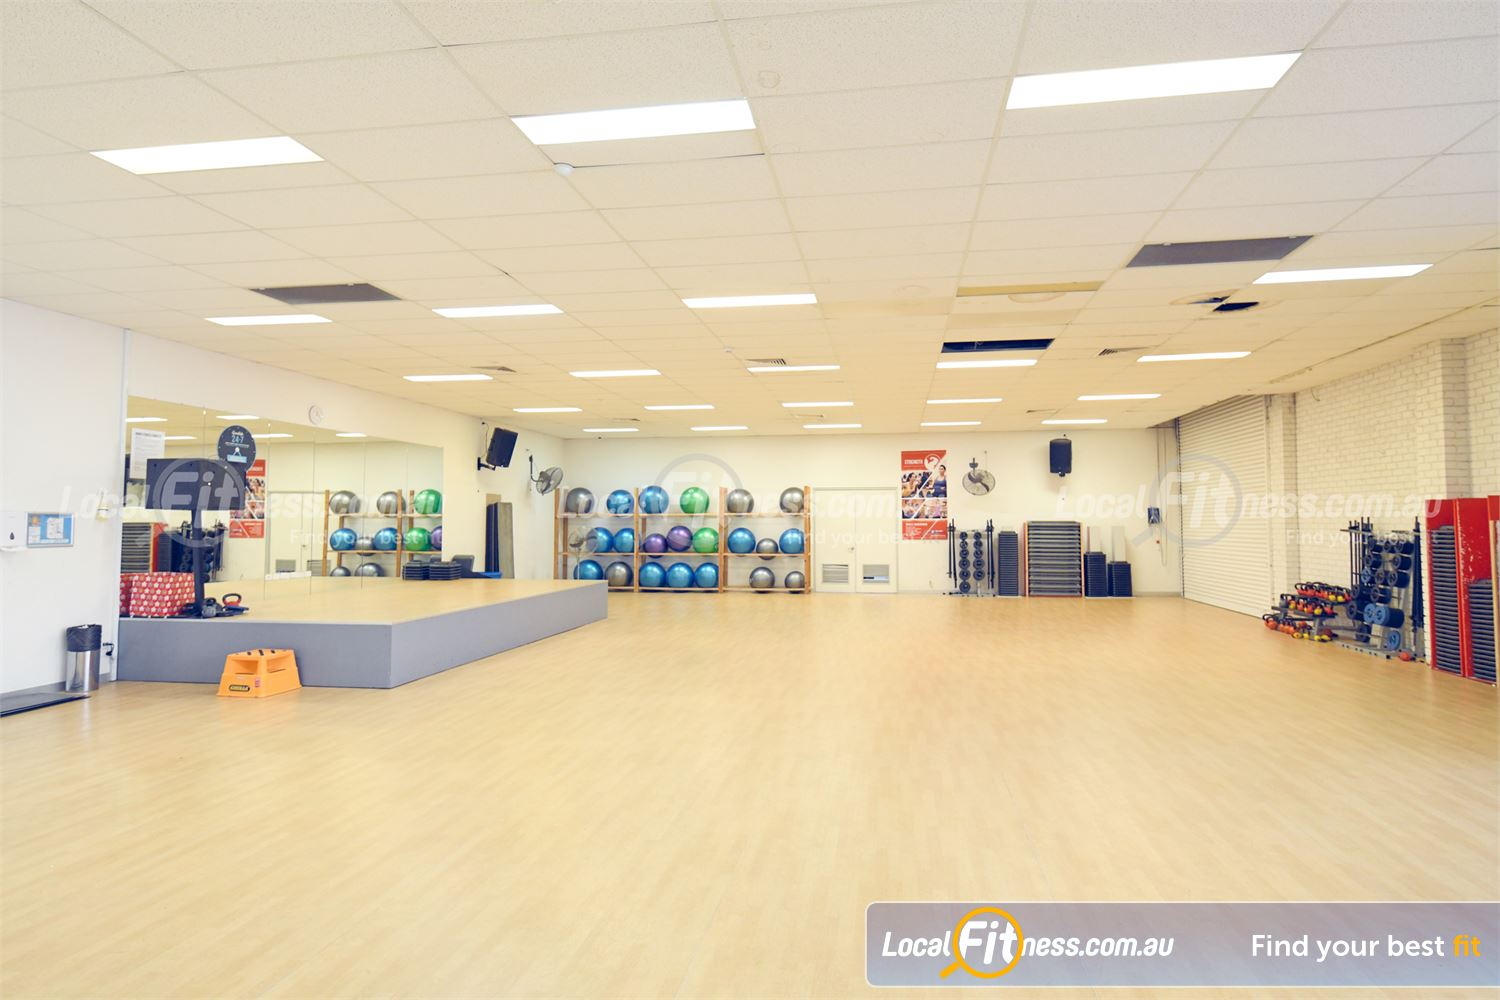 Goodlife Health Clubs Glen Iris Pump up your workout with high energy classes like Les Mills and Glen Iris Zumba.